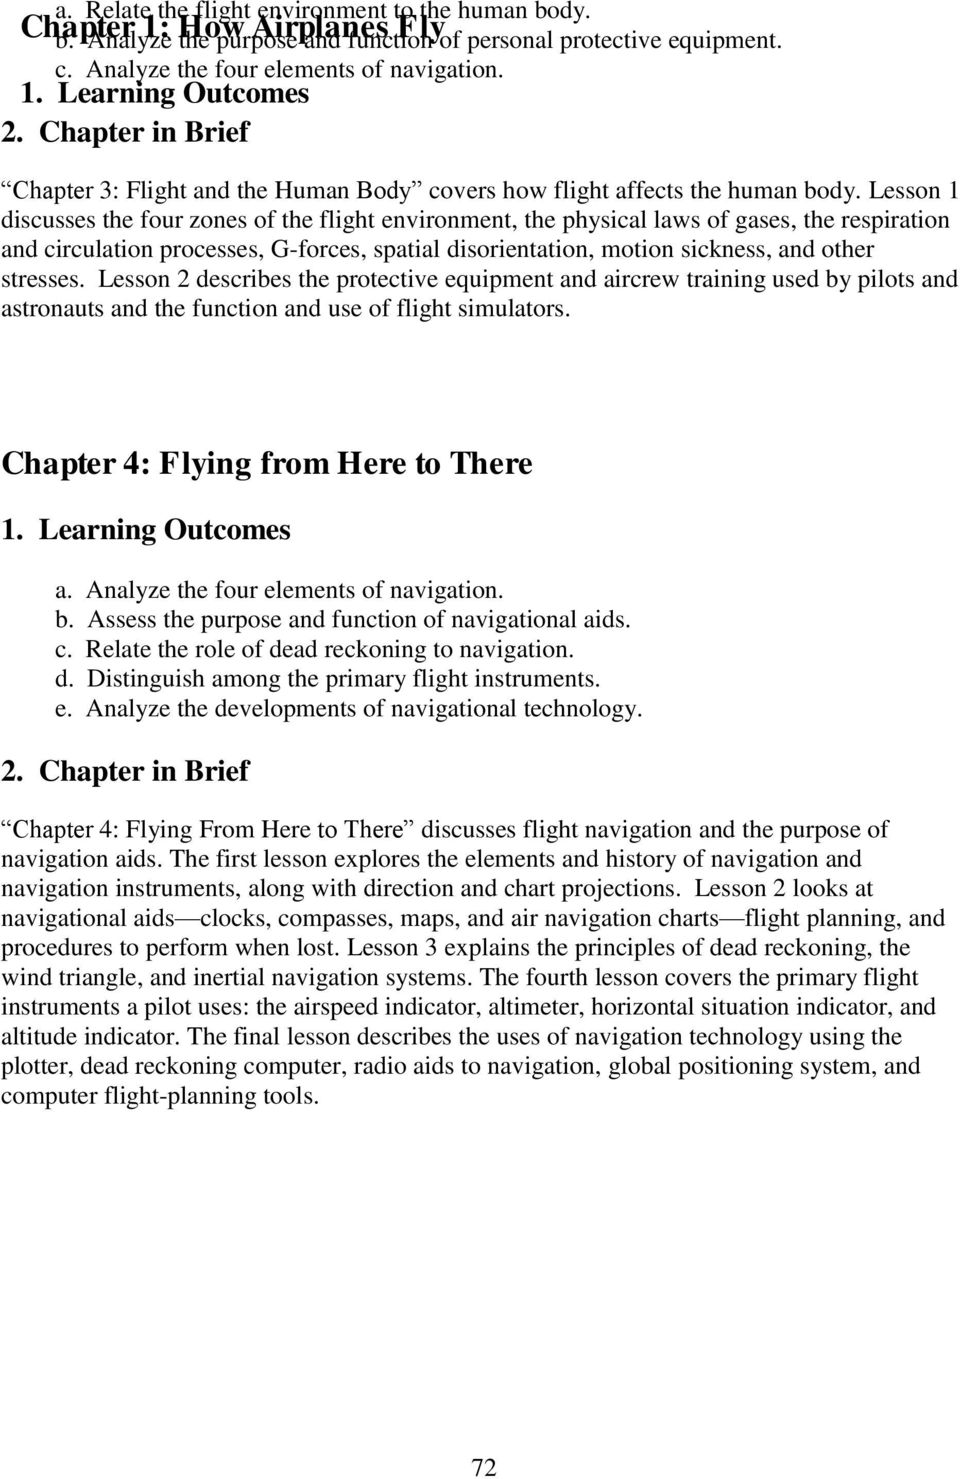 Lesson 1 discusses the four zones of the flight environment, the physical laws of gases, the respiration and circulation processes, G-forces, spatial disorientation, motion sickness, and other